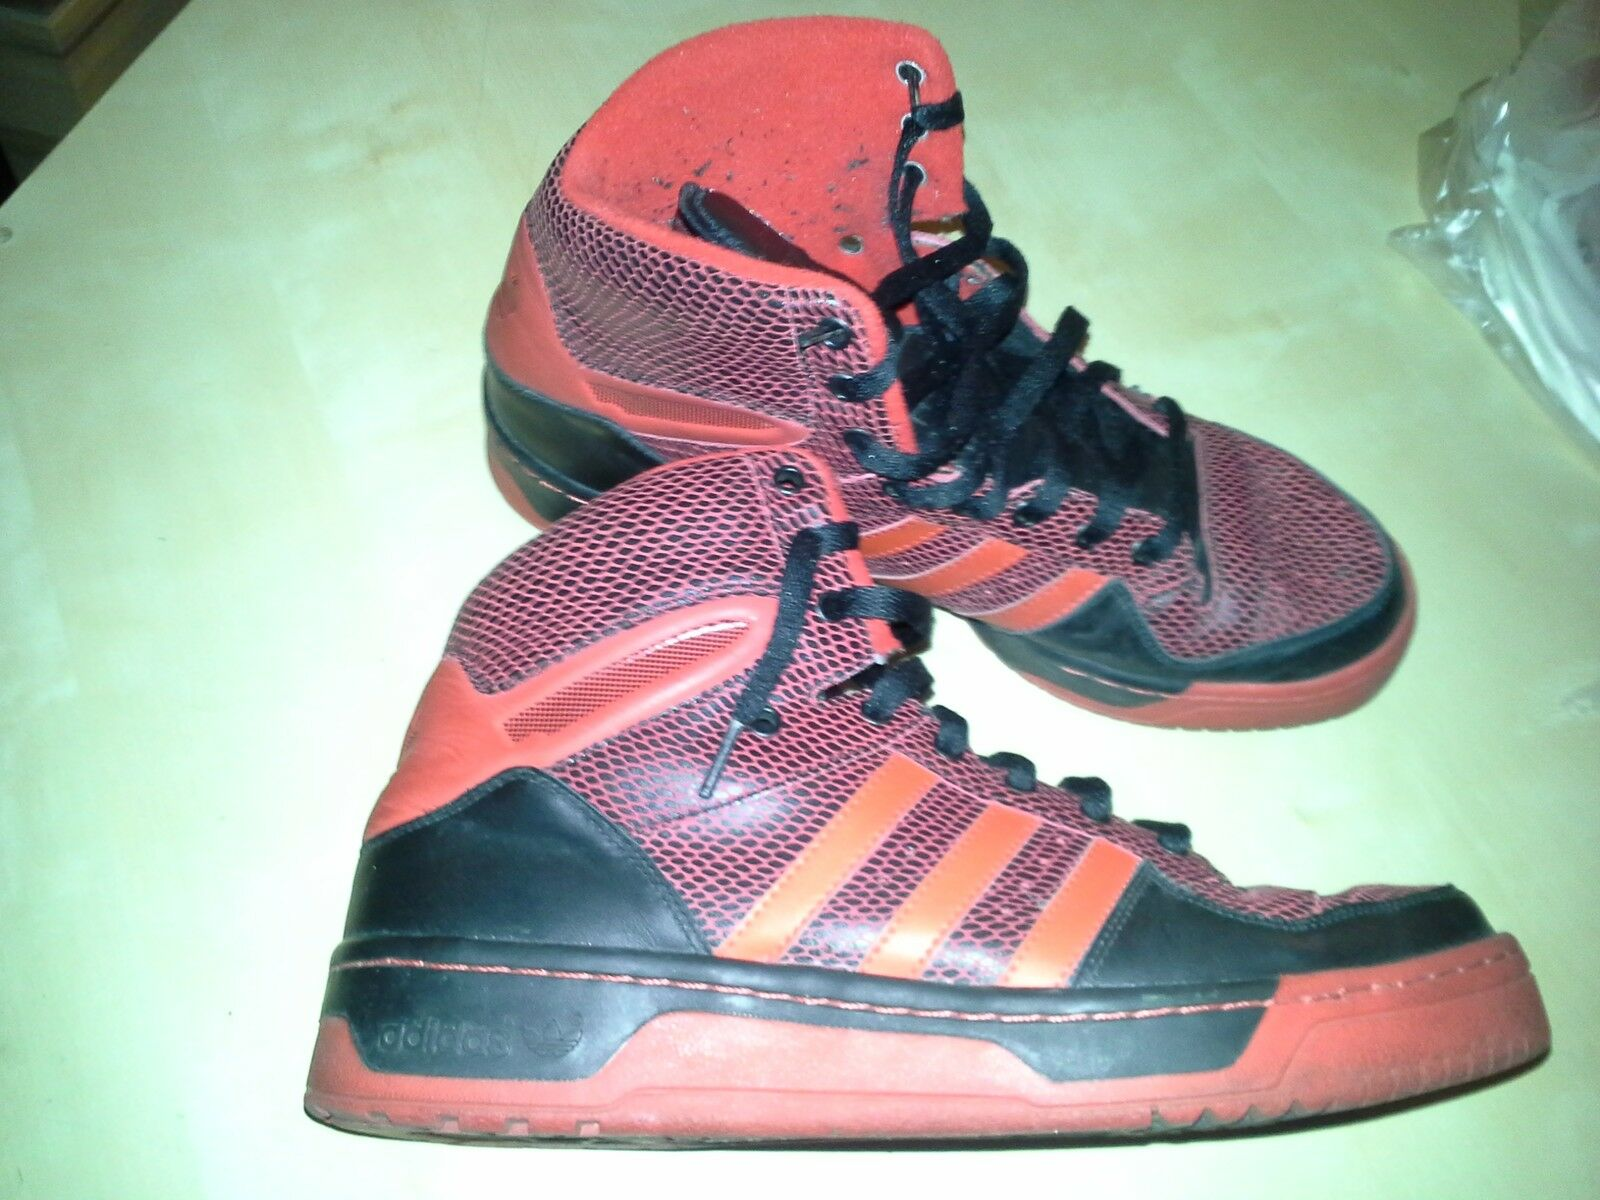 ADIDAS METRO ATTITUDE Limited Gr.44 Edition Rivalry High☆NBA Ewing Gr.44 Limited 2/3 3a8877